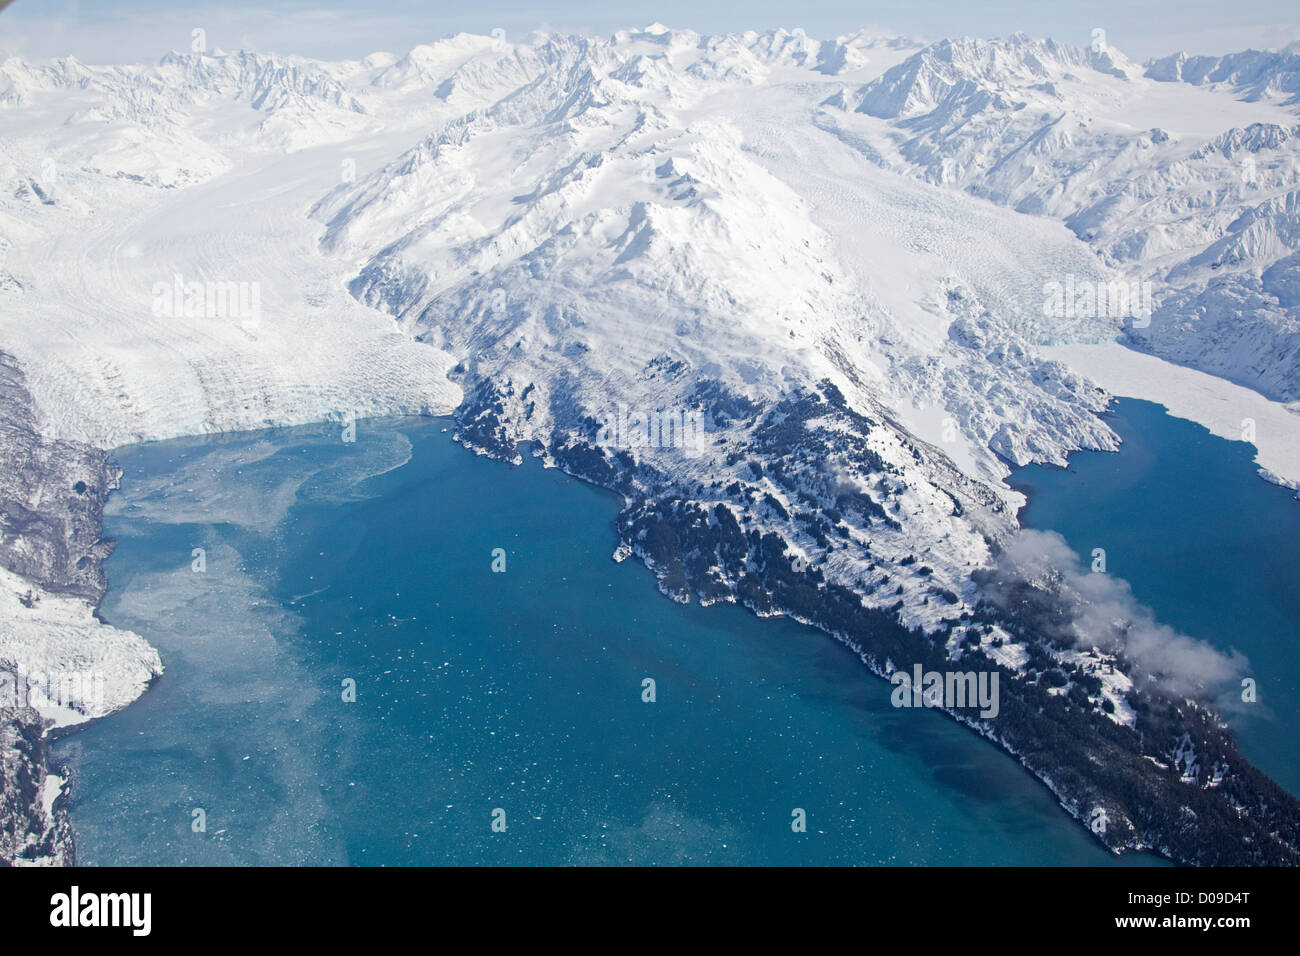 Aerial view of Harvard & Yale Glaciers, College Fjord, Chugach Mountains, Alaska US - Stock Image